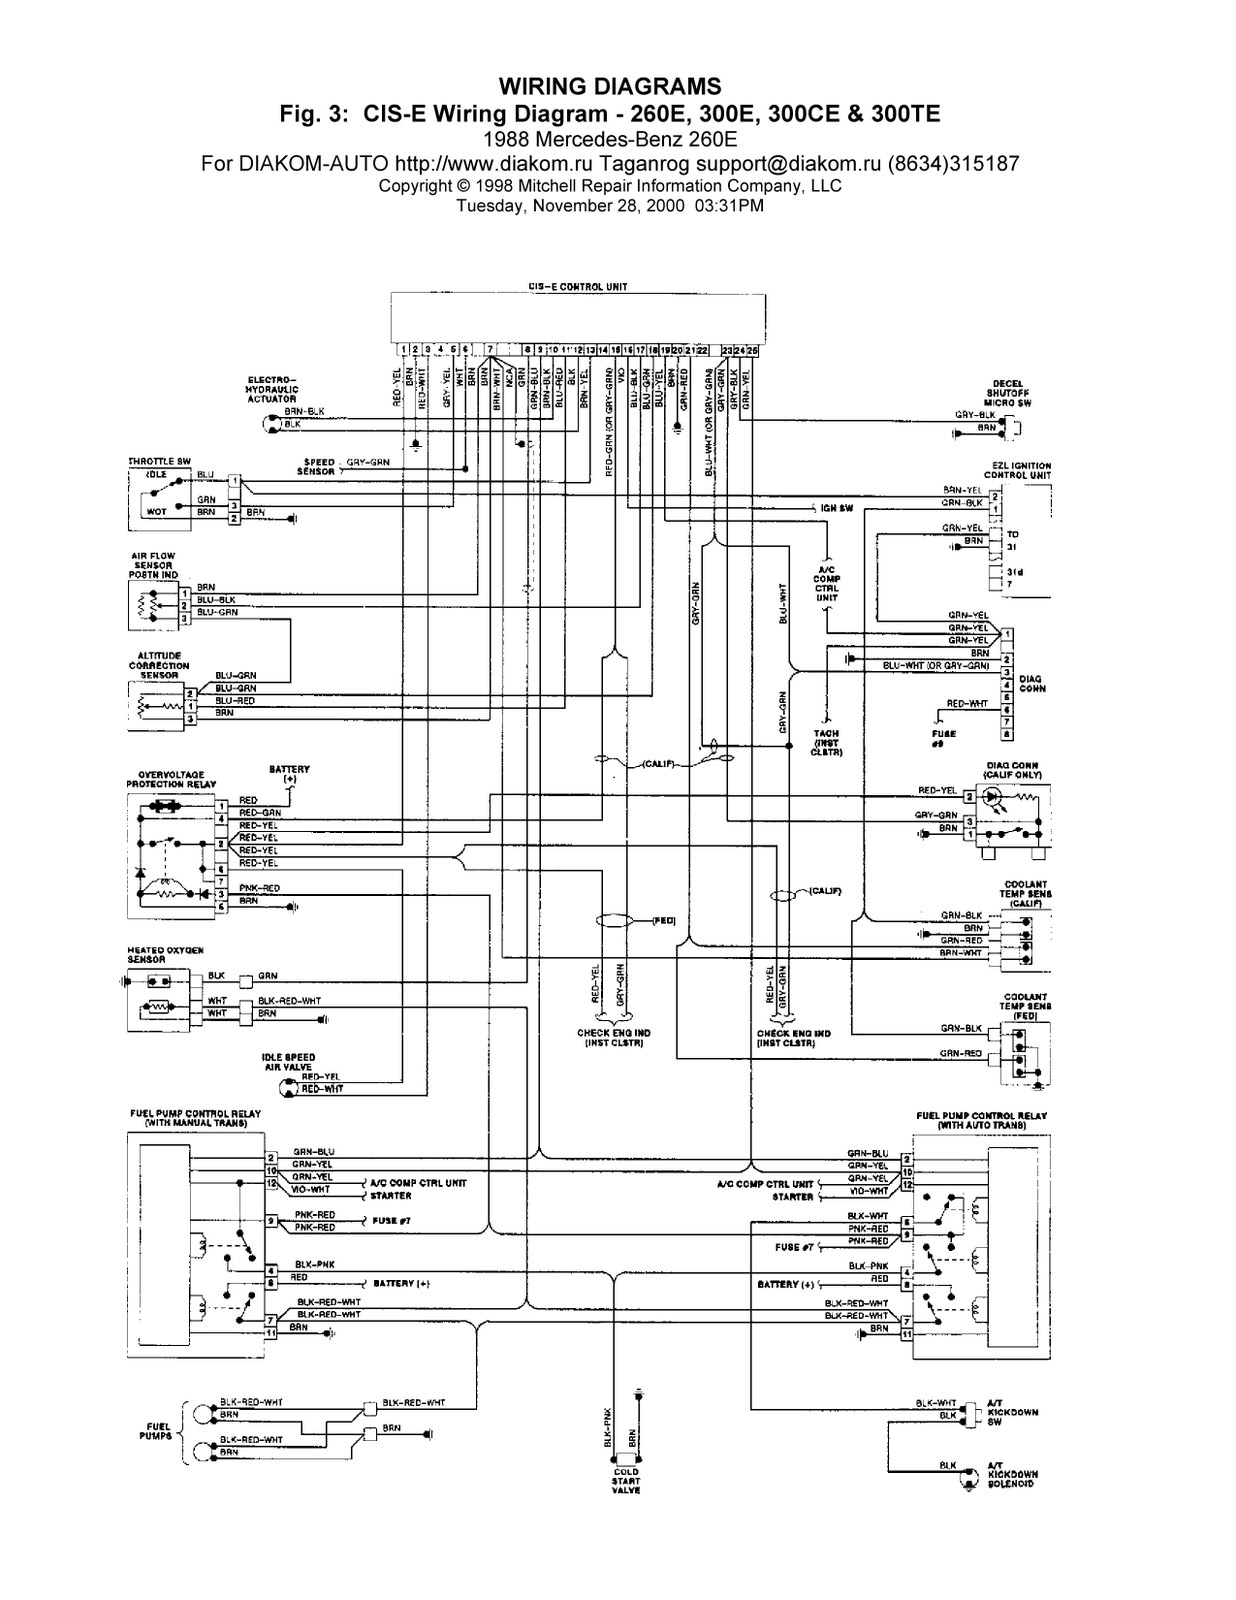 Mercedes Benz R129 Wiring Diagrams Schematics 500sl Fuse Box Diagram 2003 2000 Sl500